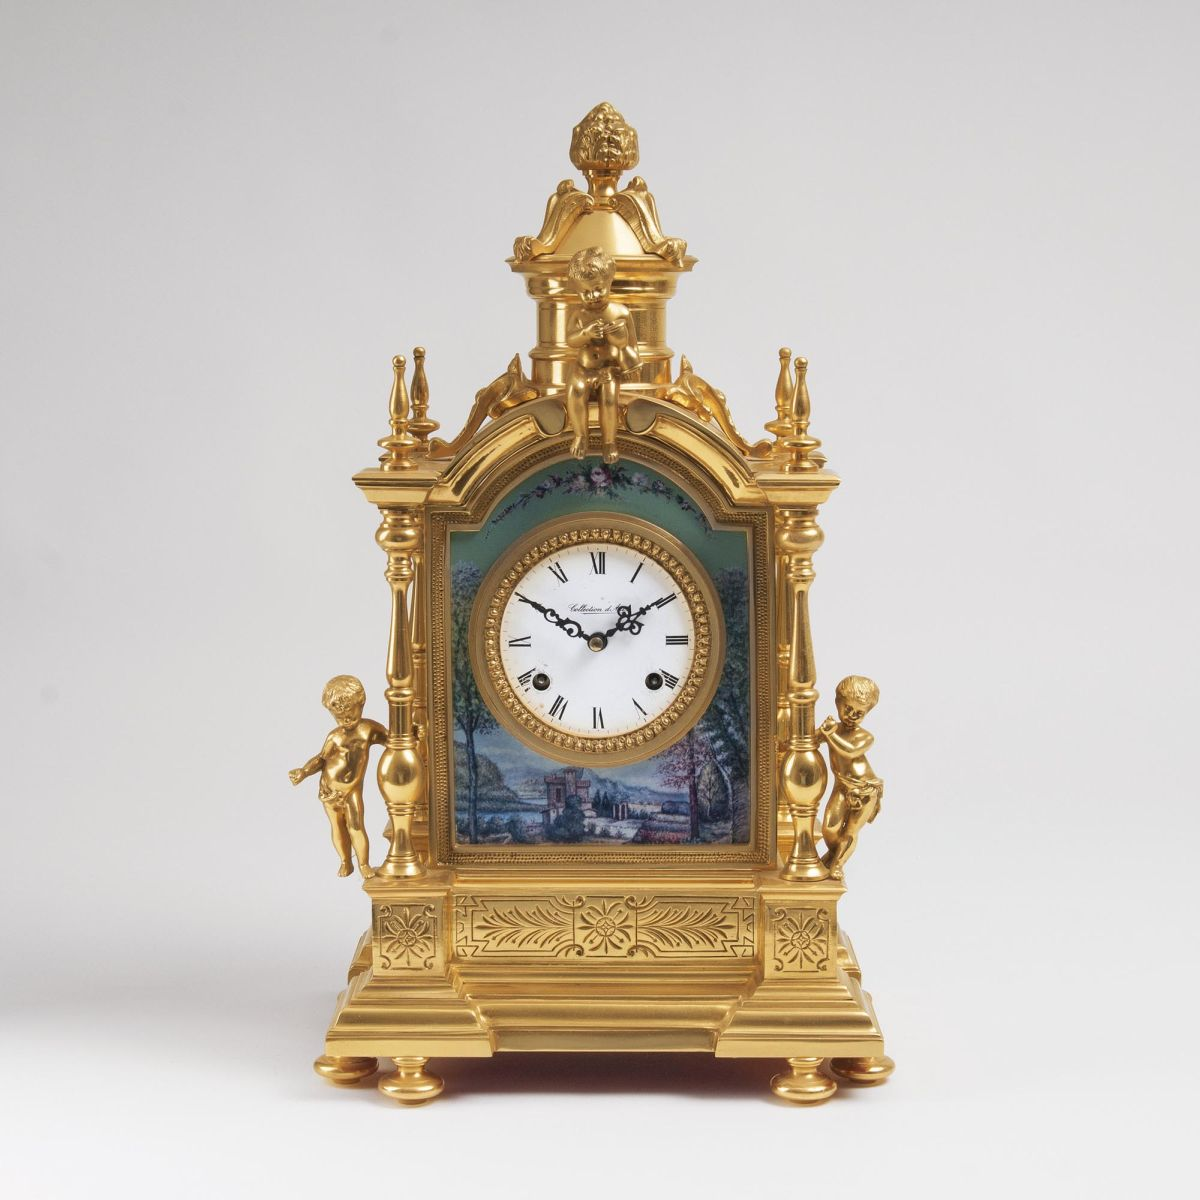 A Mantle Clock with Putti